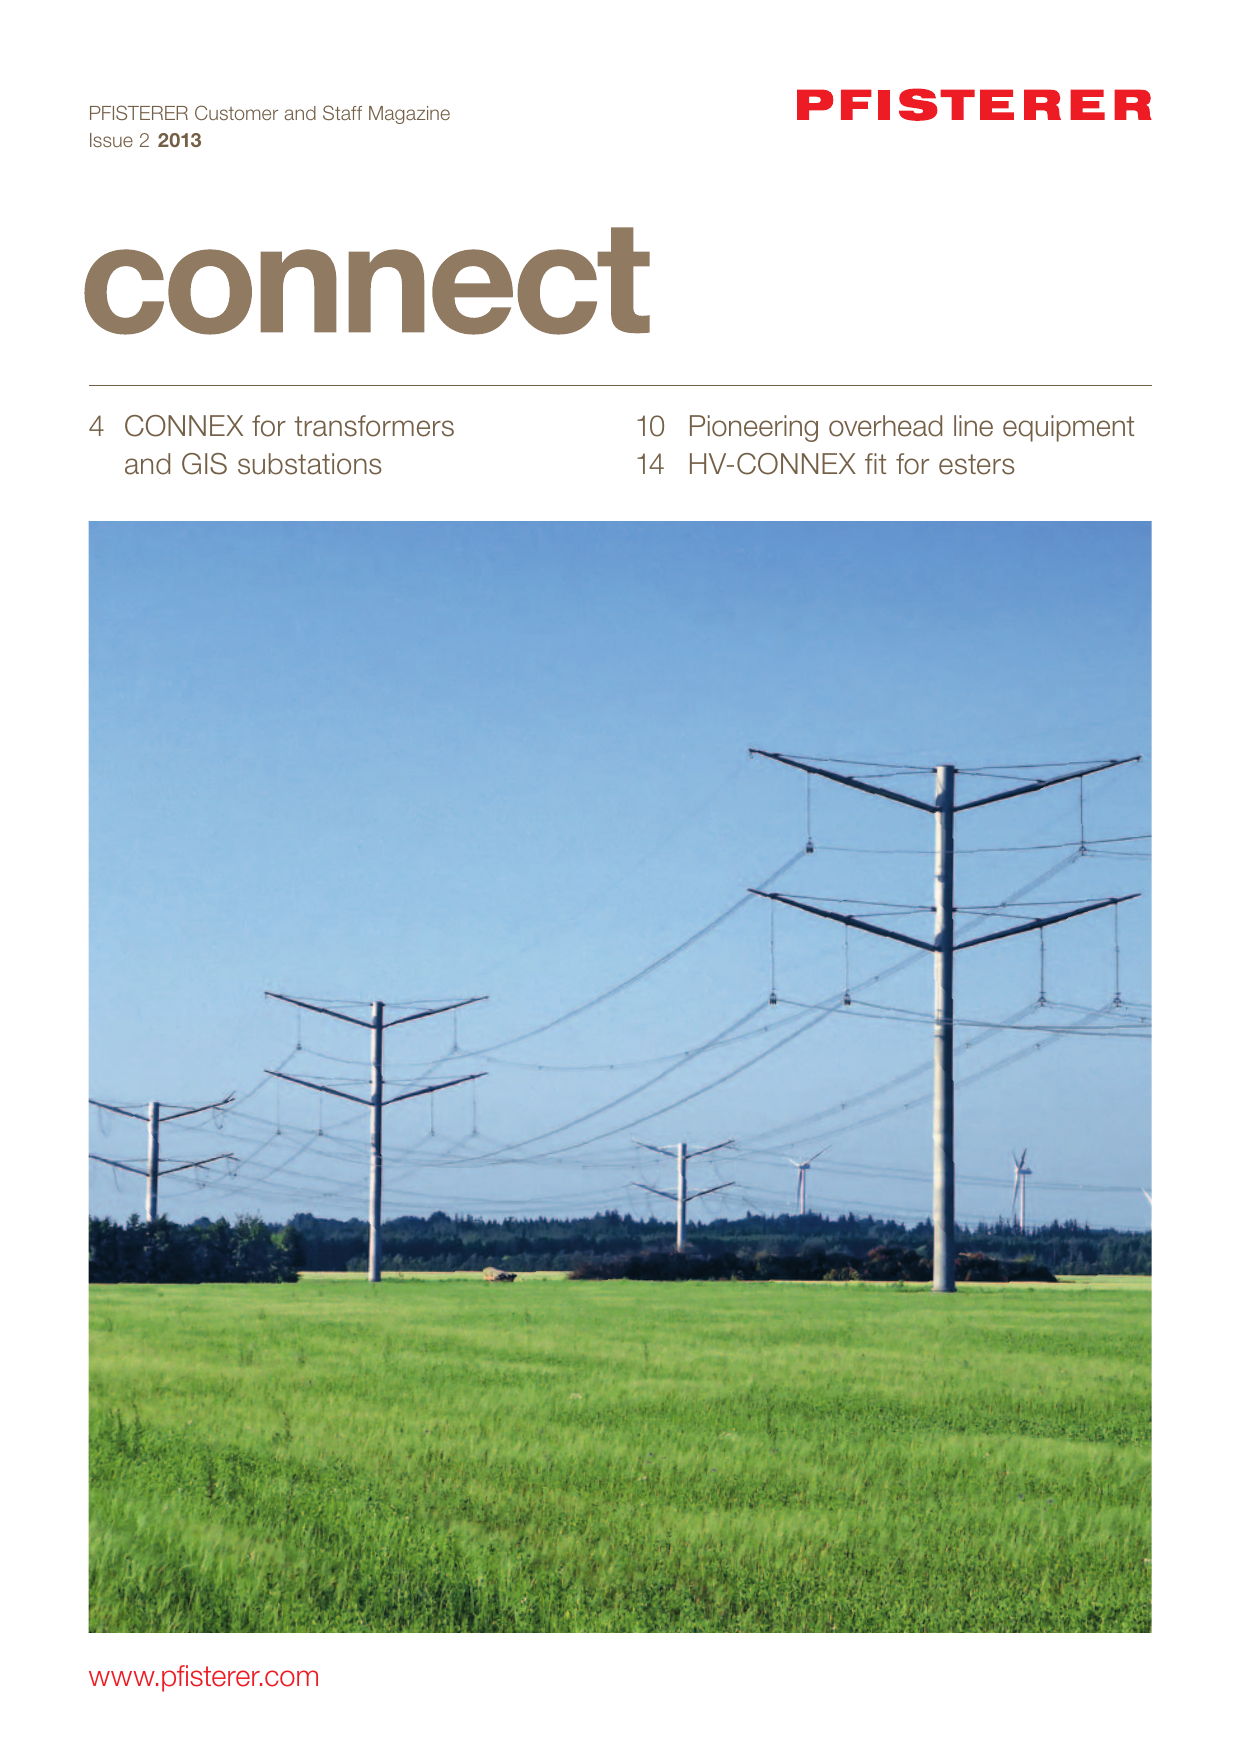 Www Pfisterer Com 4 Connex For Transformers And Gis Substations